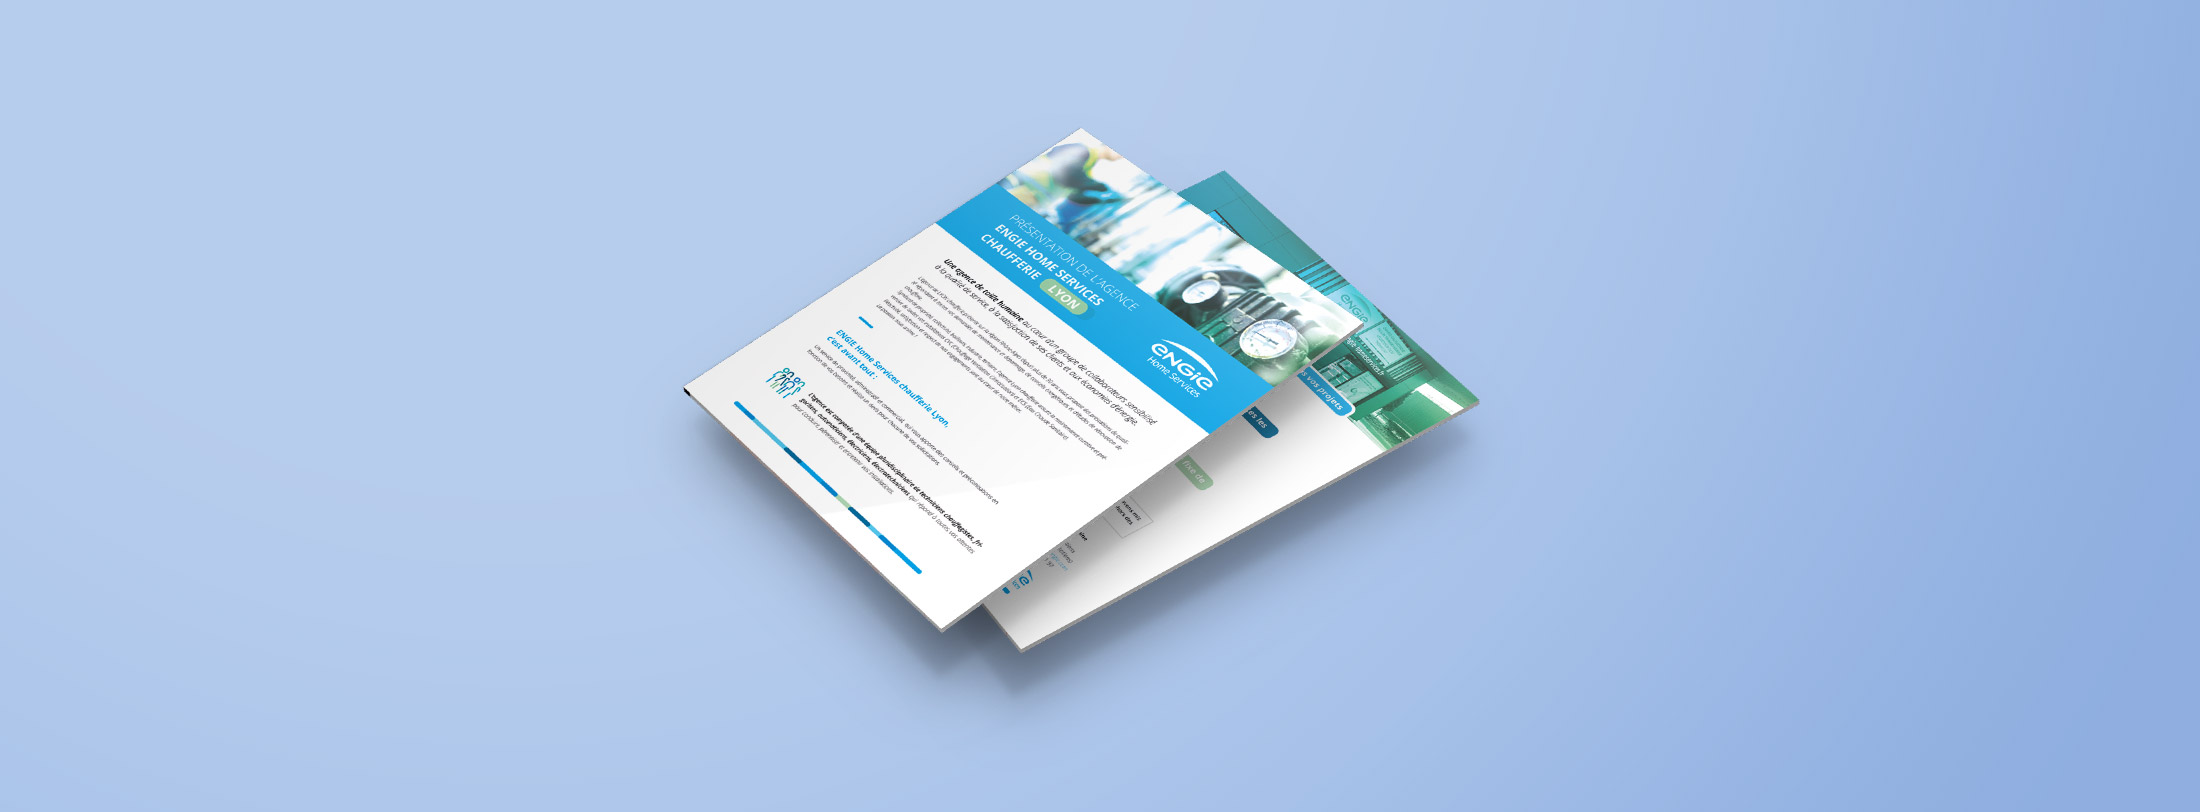 int-Engie-osb-communication-print-design-brochure